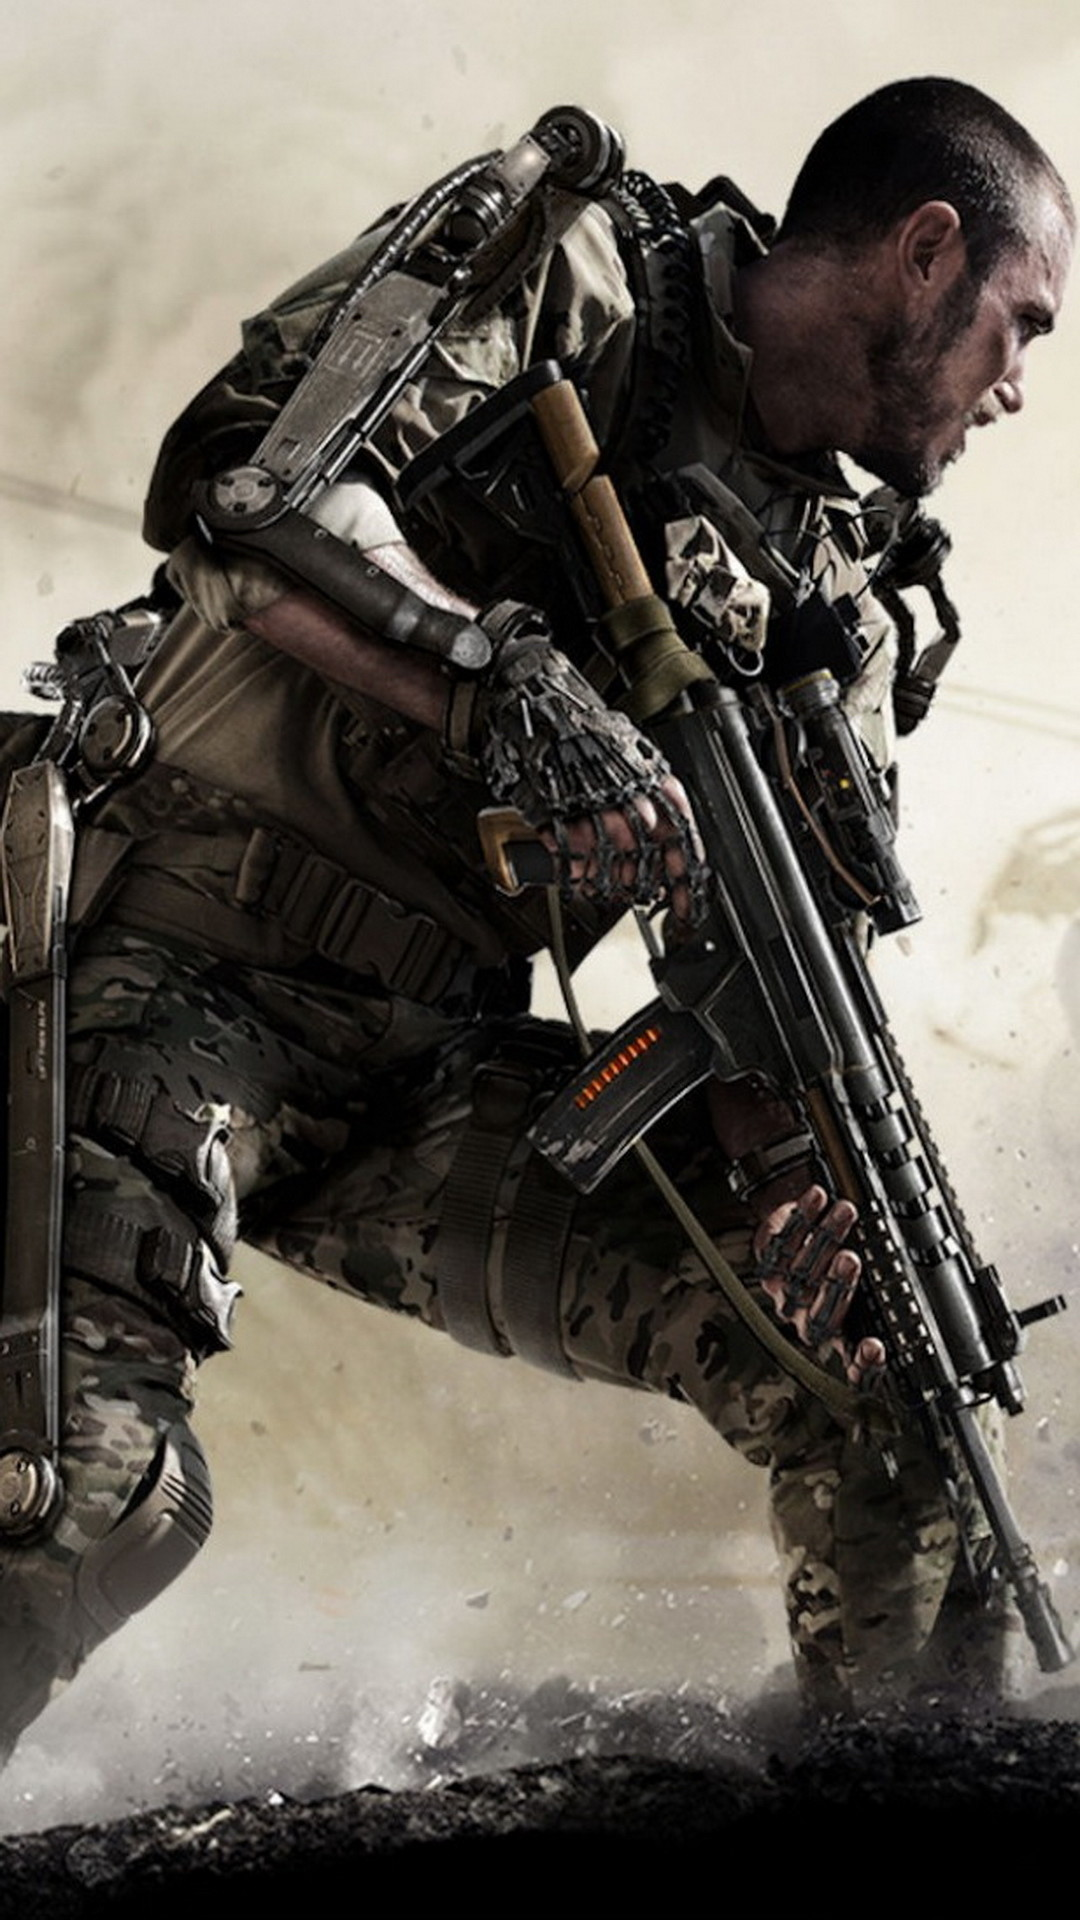 Call of duty iphone wallpaper 78 images - Call of duty warfare wallpaper ...